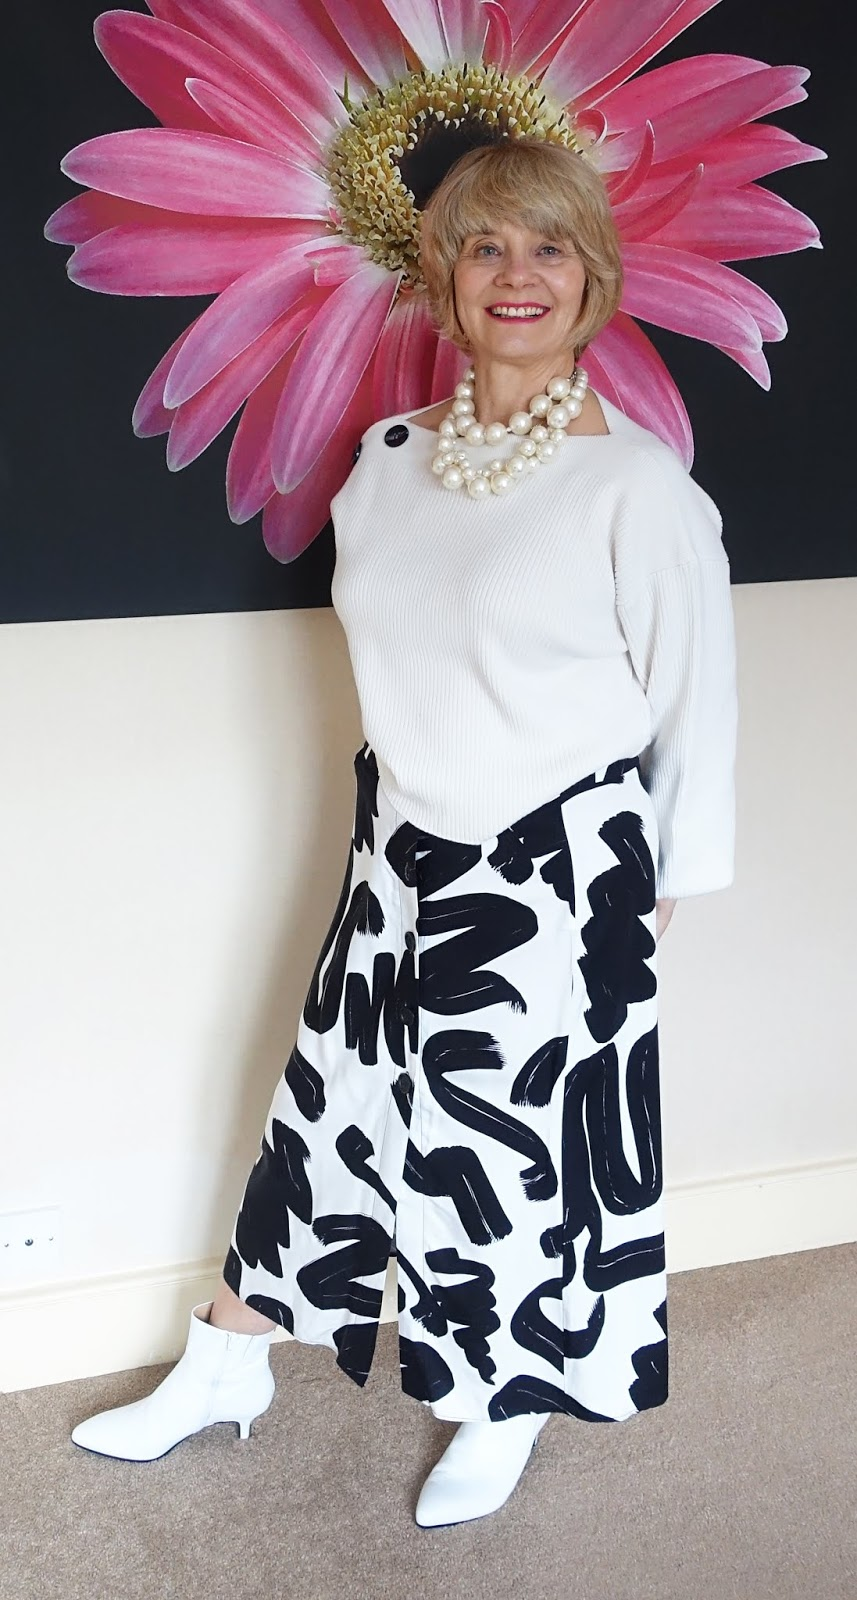 Take an abstract patterned white and black midi skirt and pair with a baggy white jumper and white boots for a modern, contemporary look that will flatter women of any age